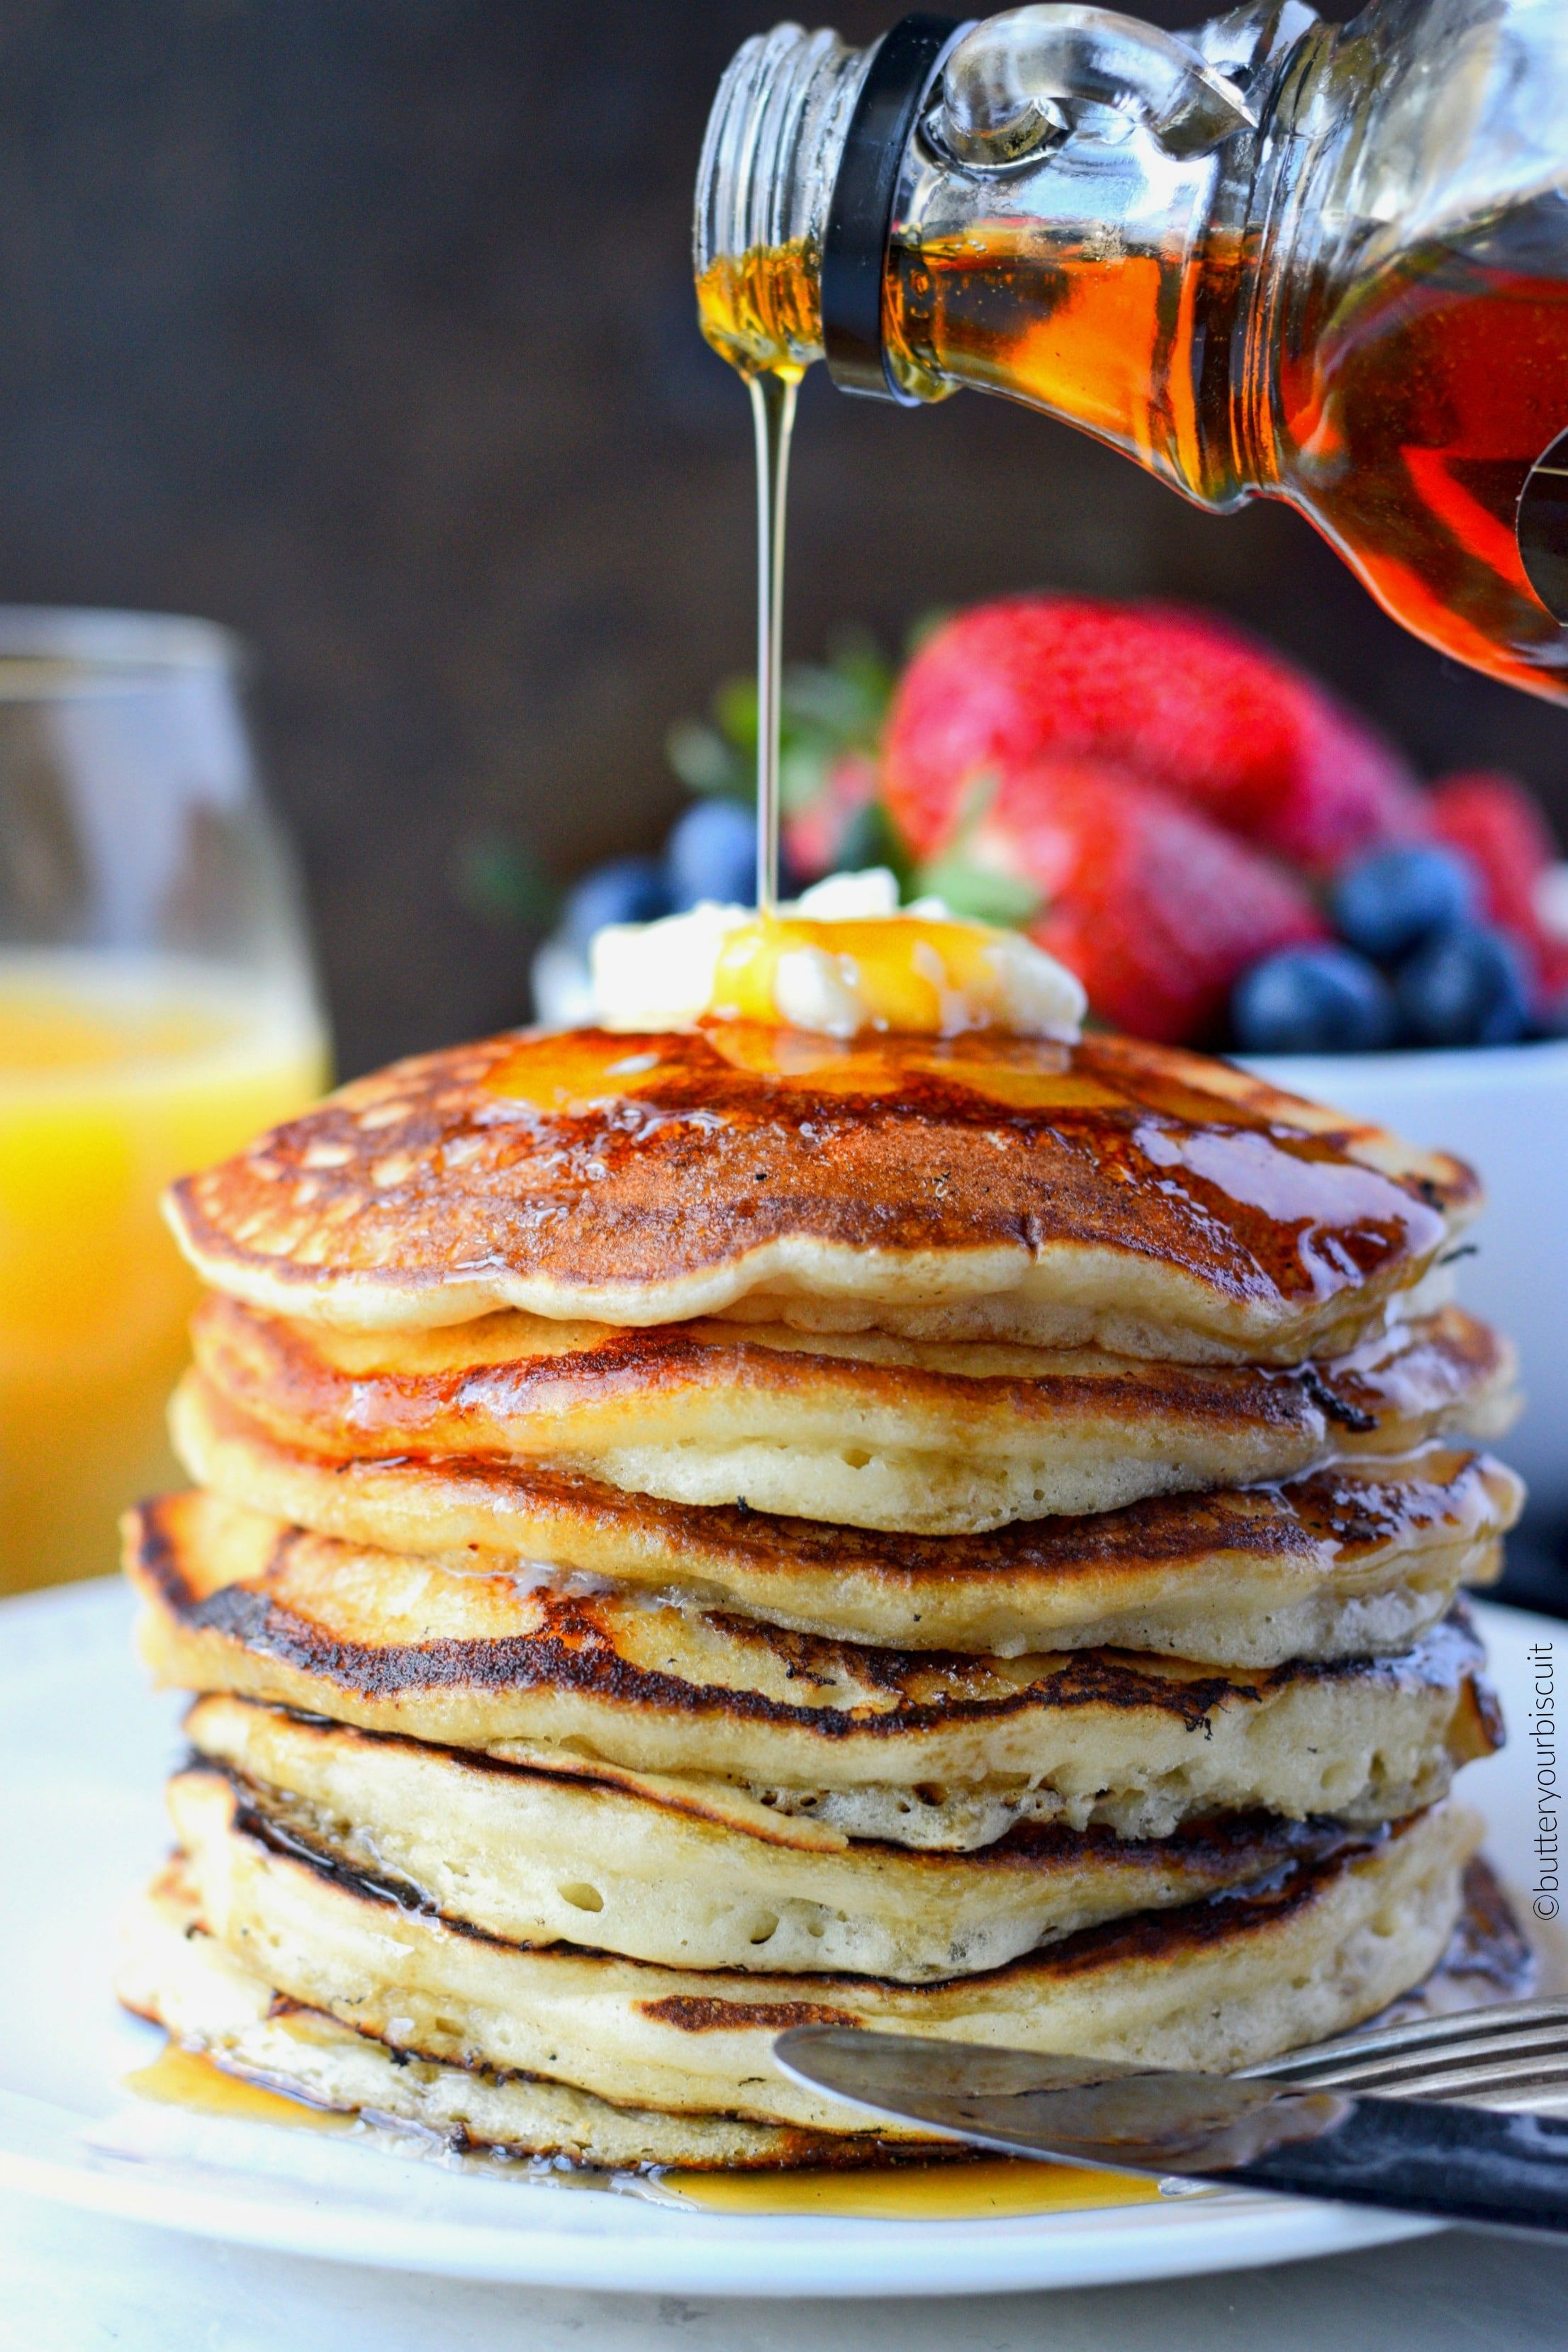 These Ihop Copycat Pancakes Are Just Like Your Favorite Restaurant Soft And Super Fluffy Perfe I Hop Pancake Recipe Ihop Pancake Recipe Copycat Ihop Pancakes